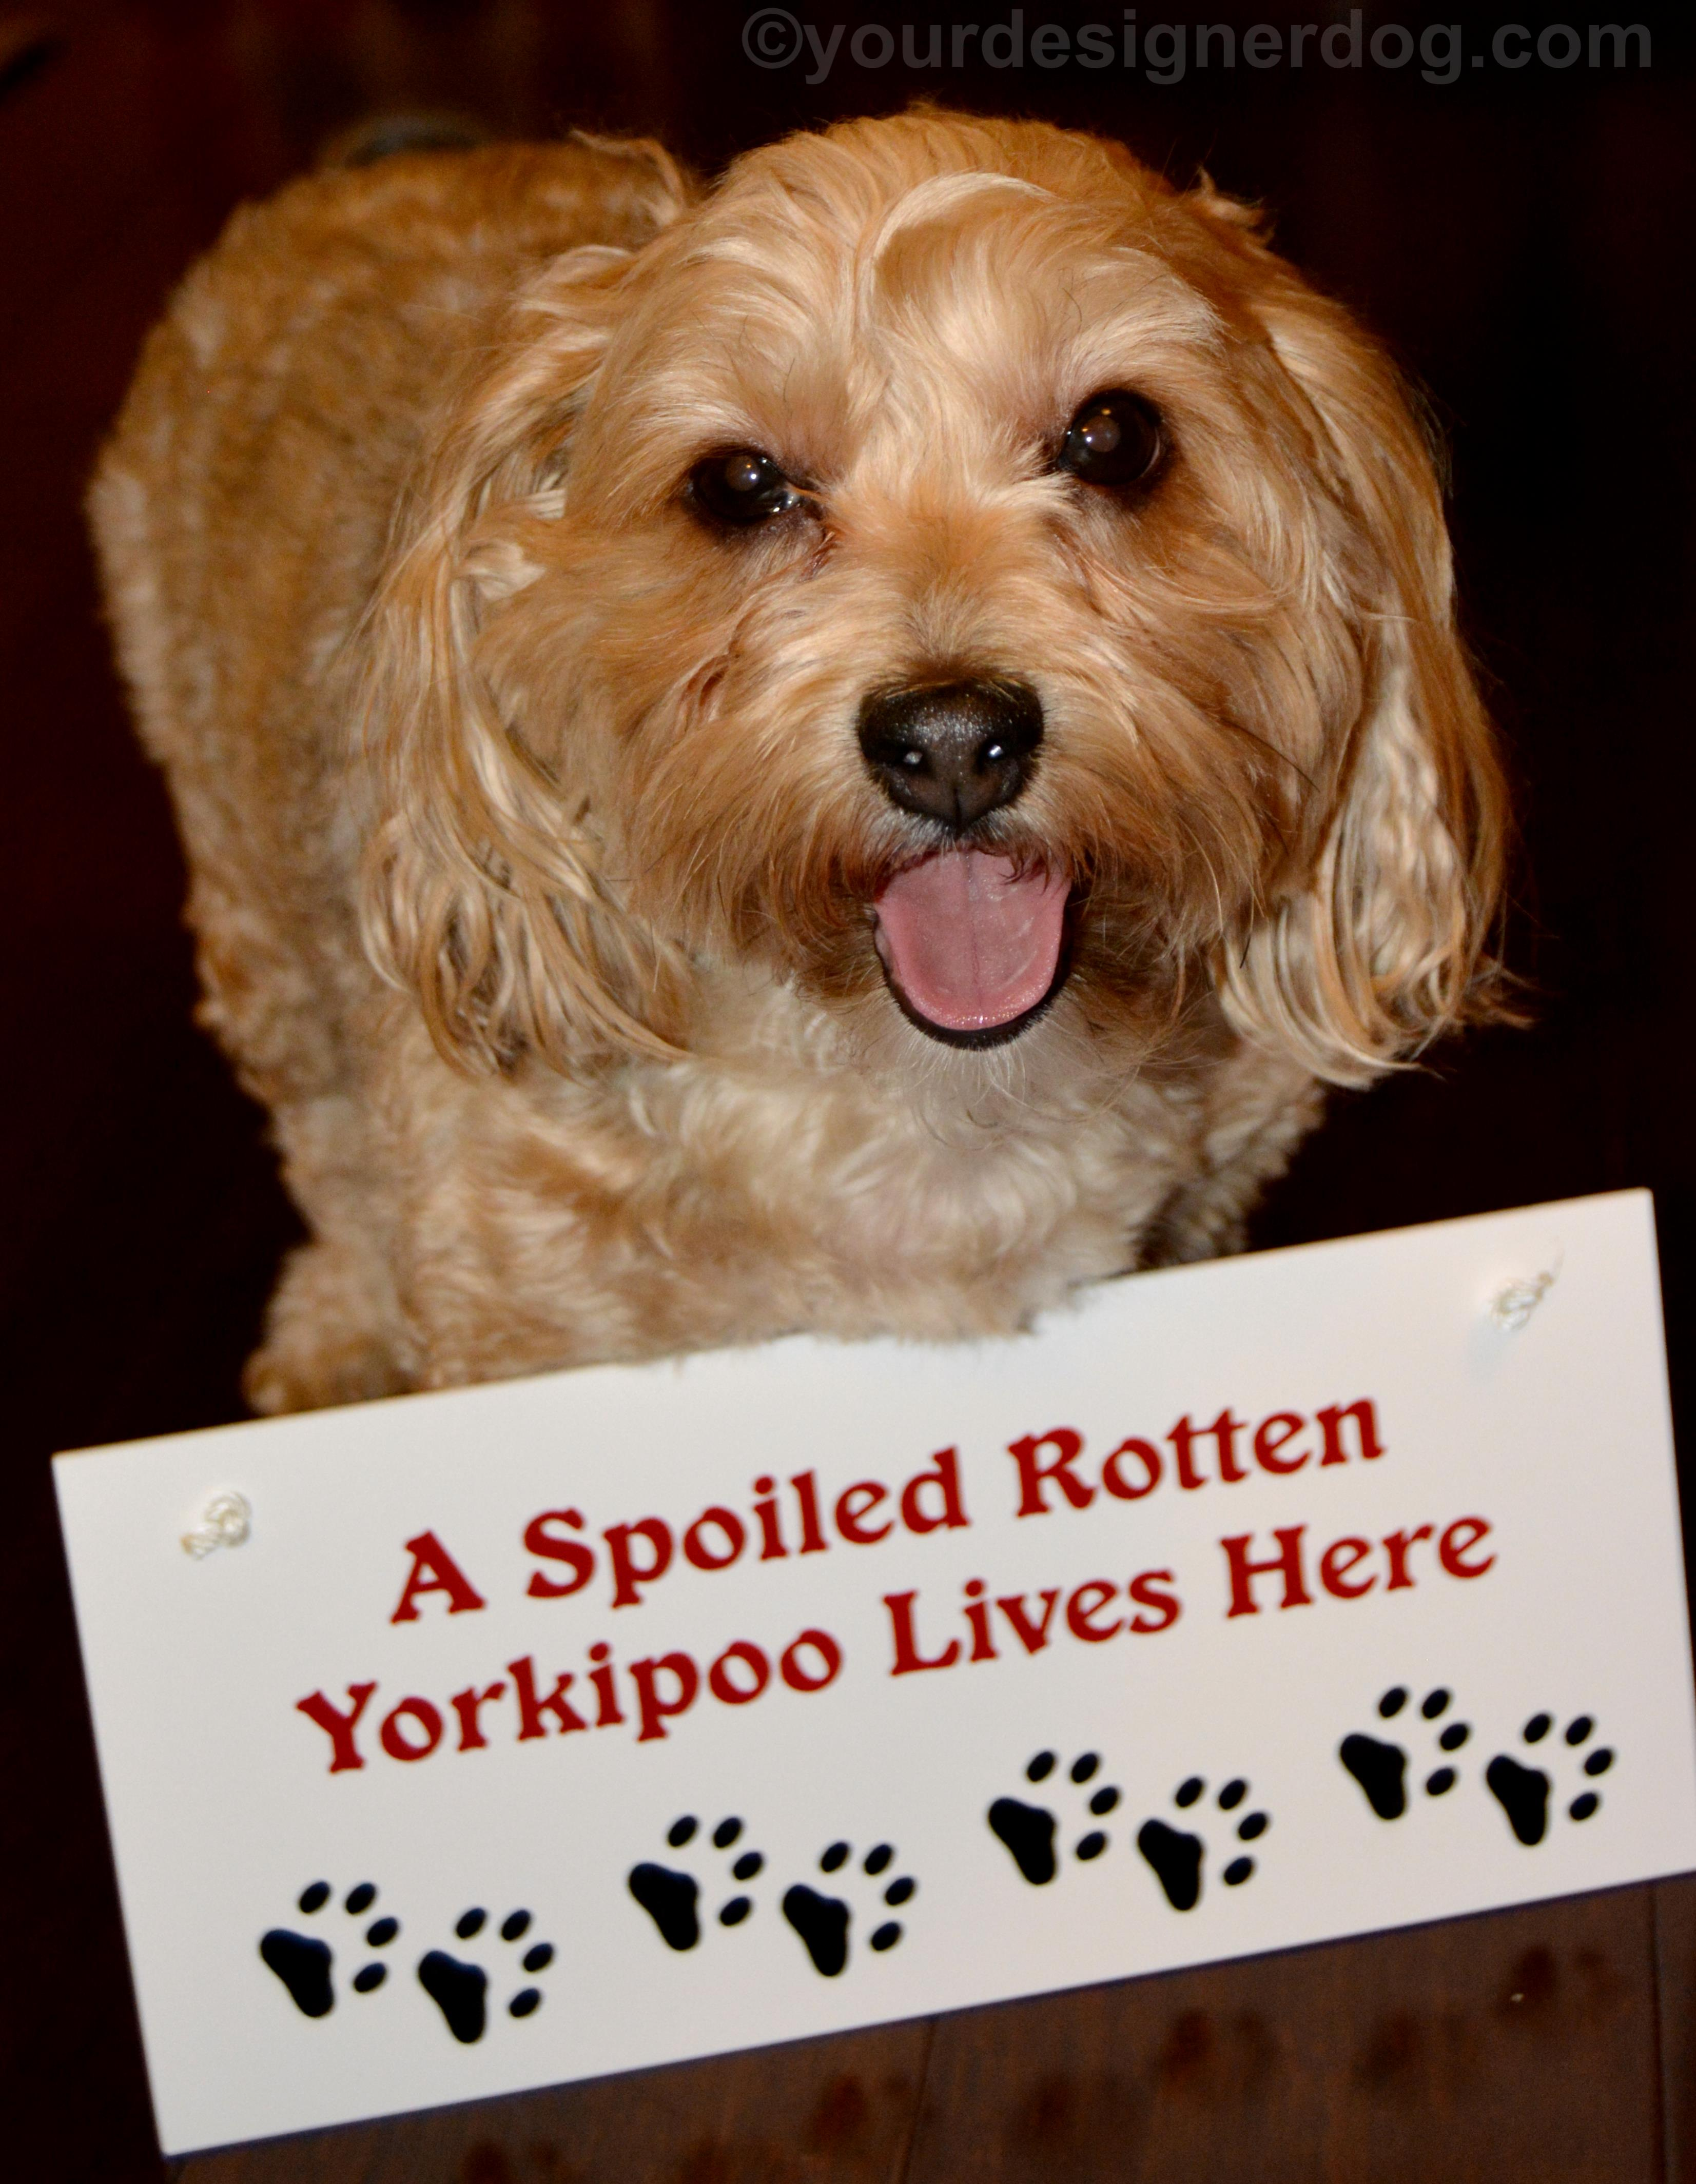 A Spoiled Rotten Yorkipoo Lives Here